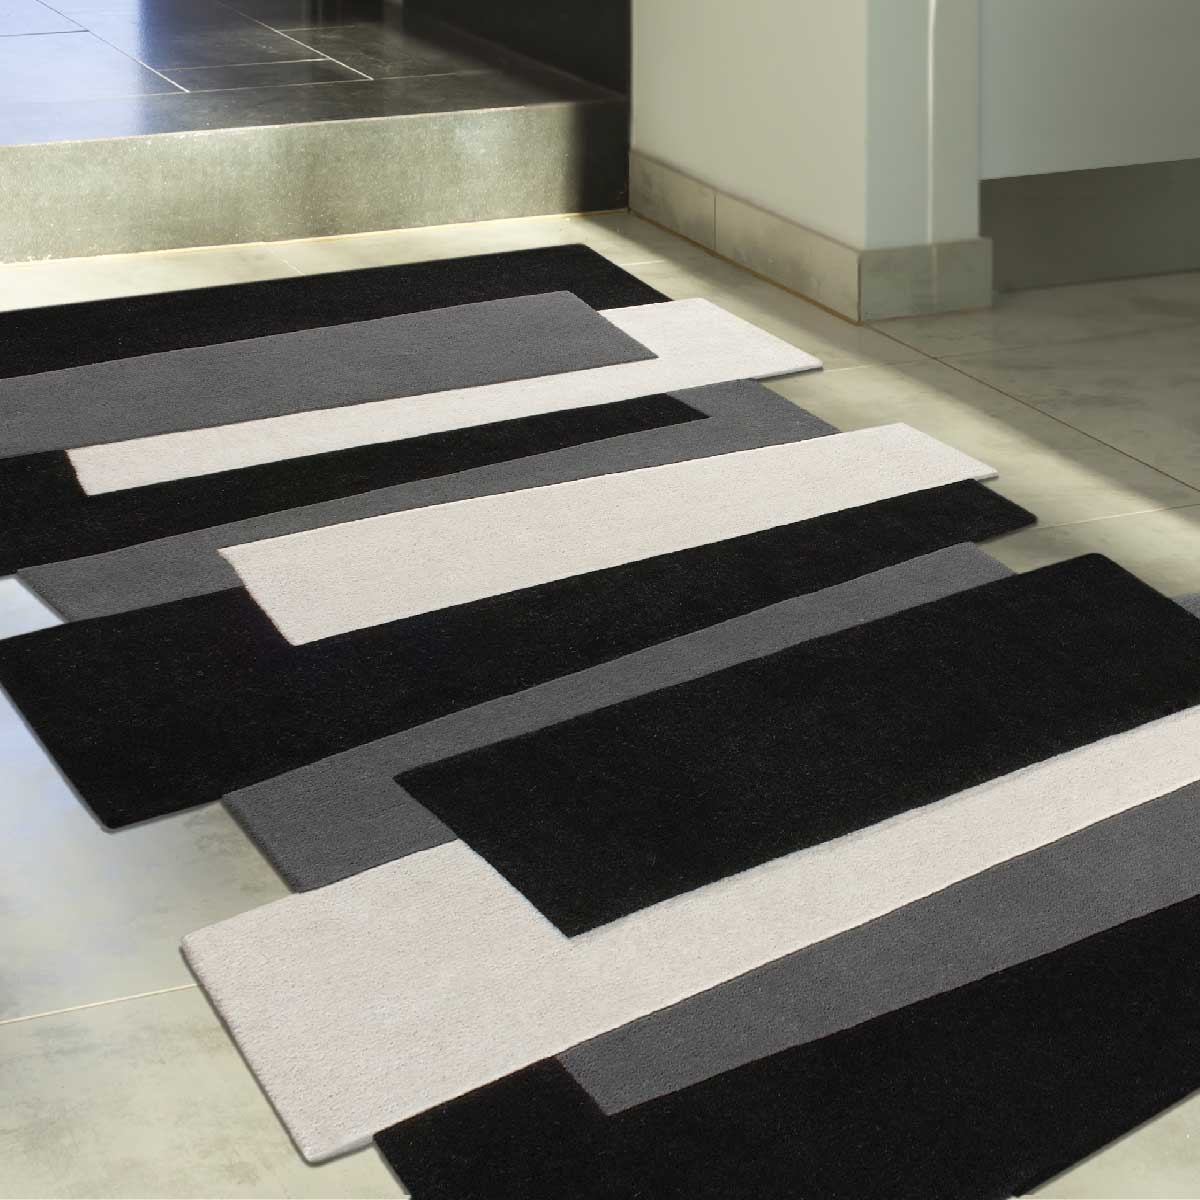 tapis salle de bain original tapis salle de bain original. Black Bedroom Furniture Sets. Home Design Ideas